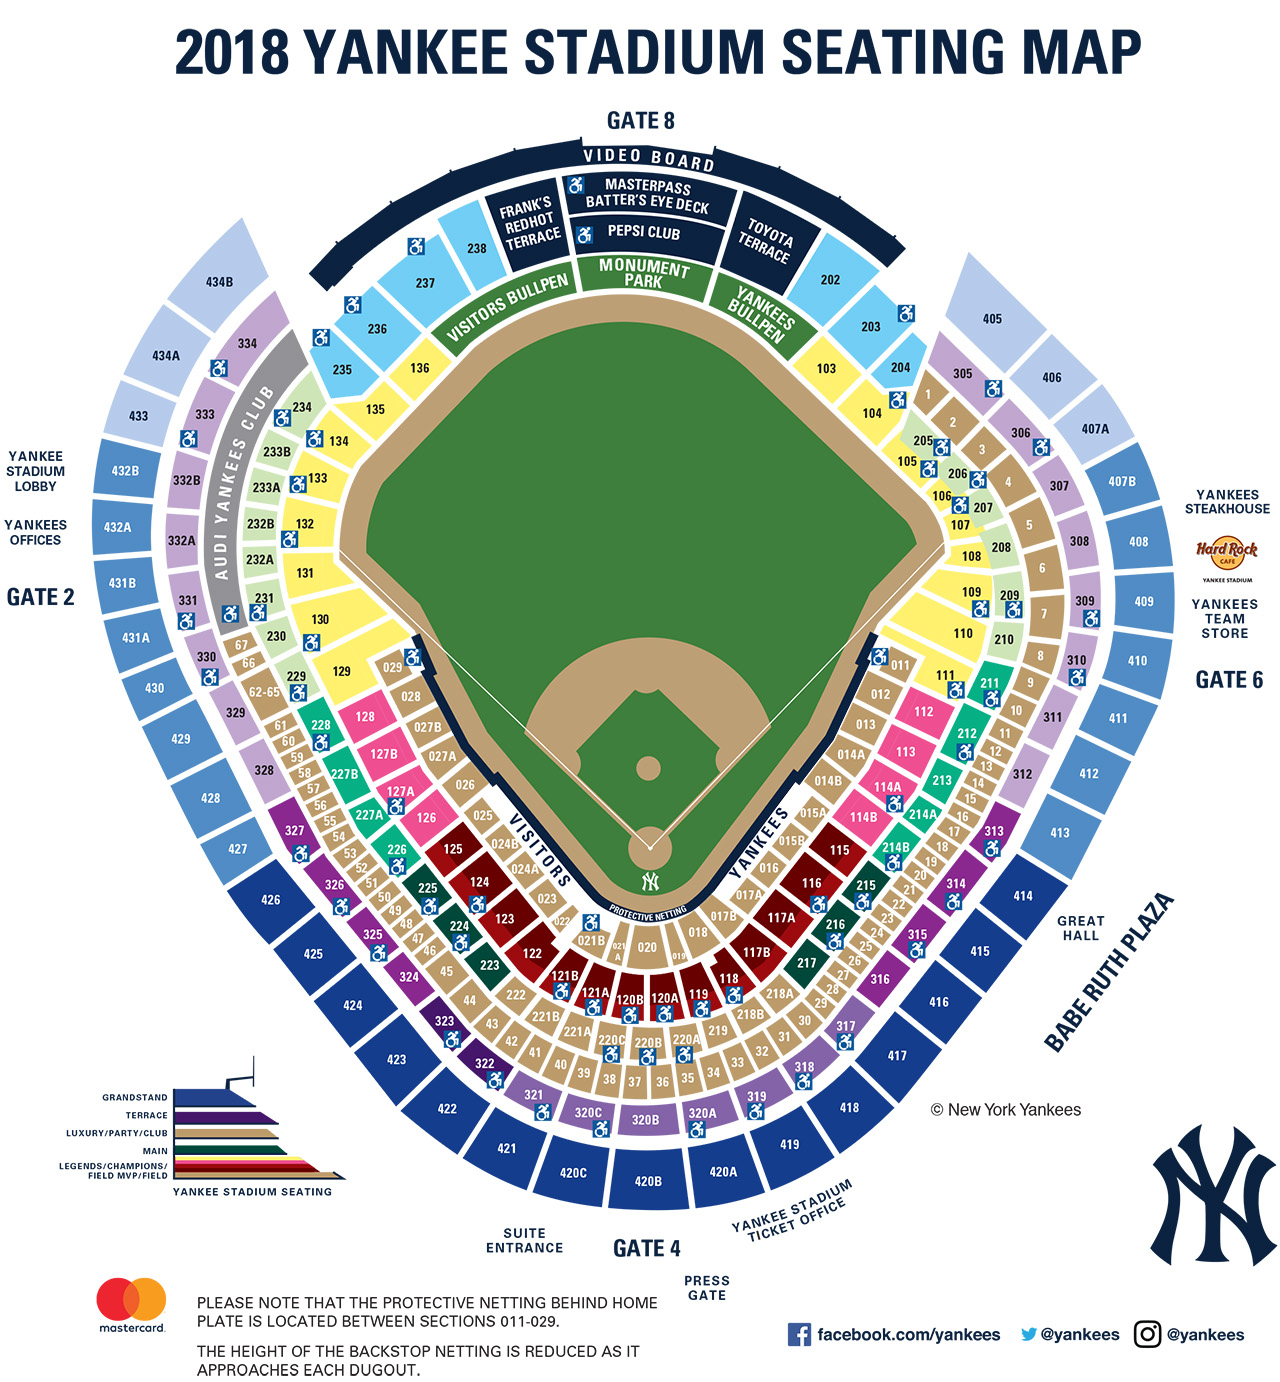 2018 Yankee Stadium seating chart